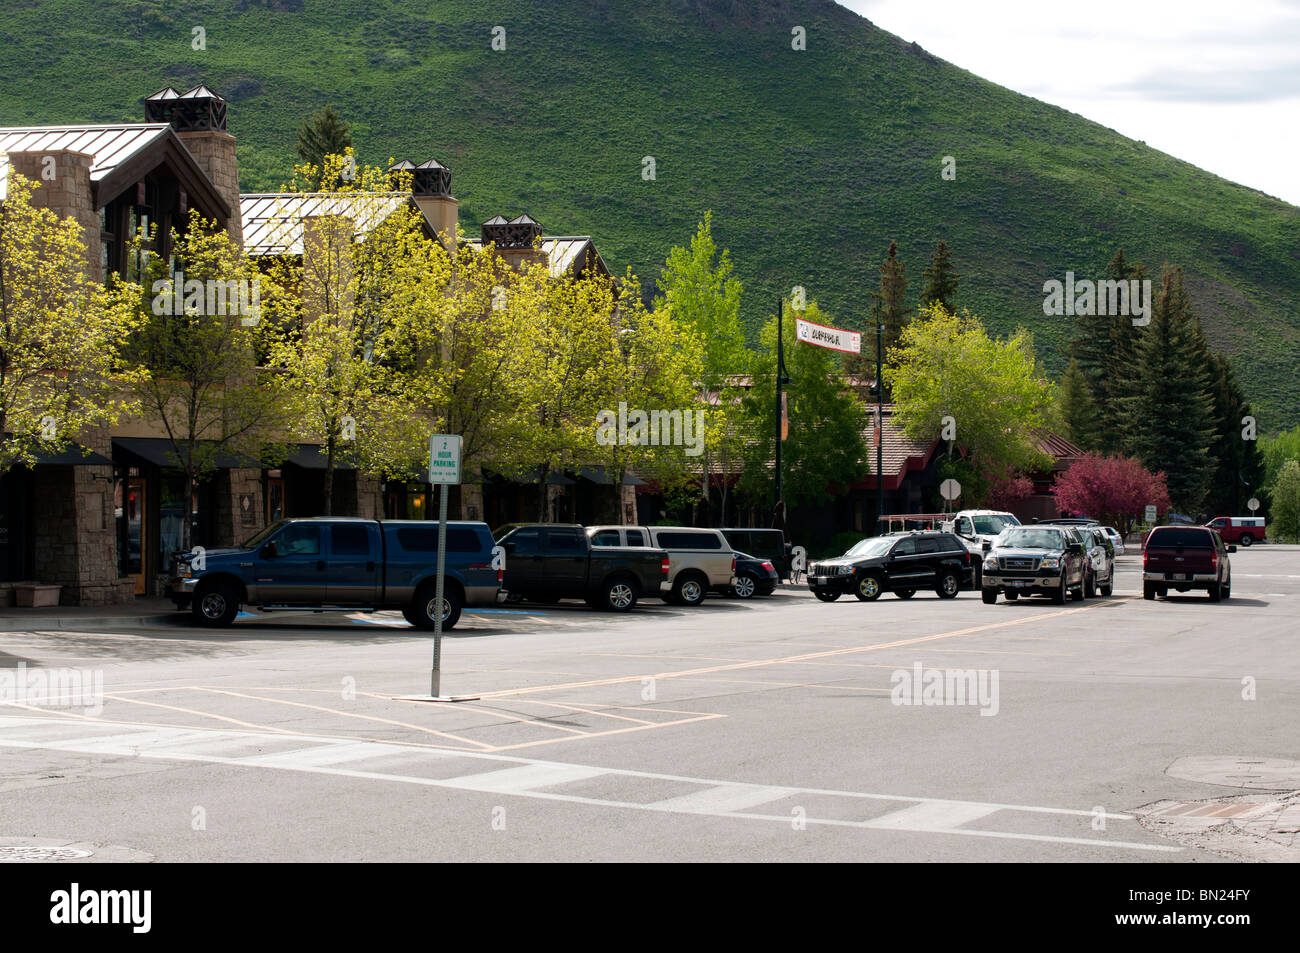 One of the newer shopping sections of Ketchum - Stock Image